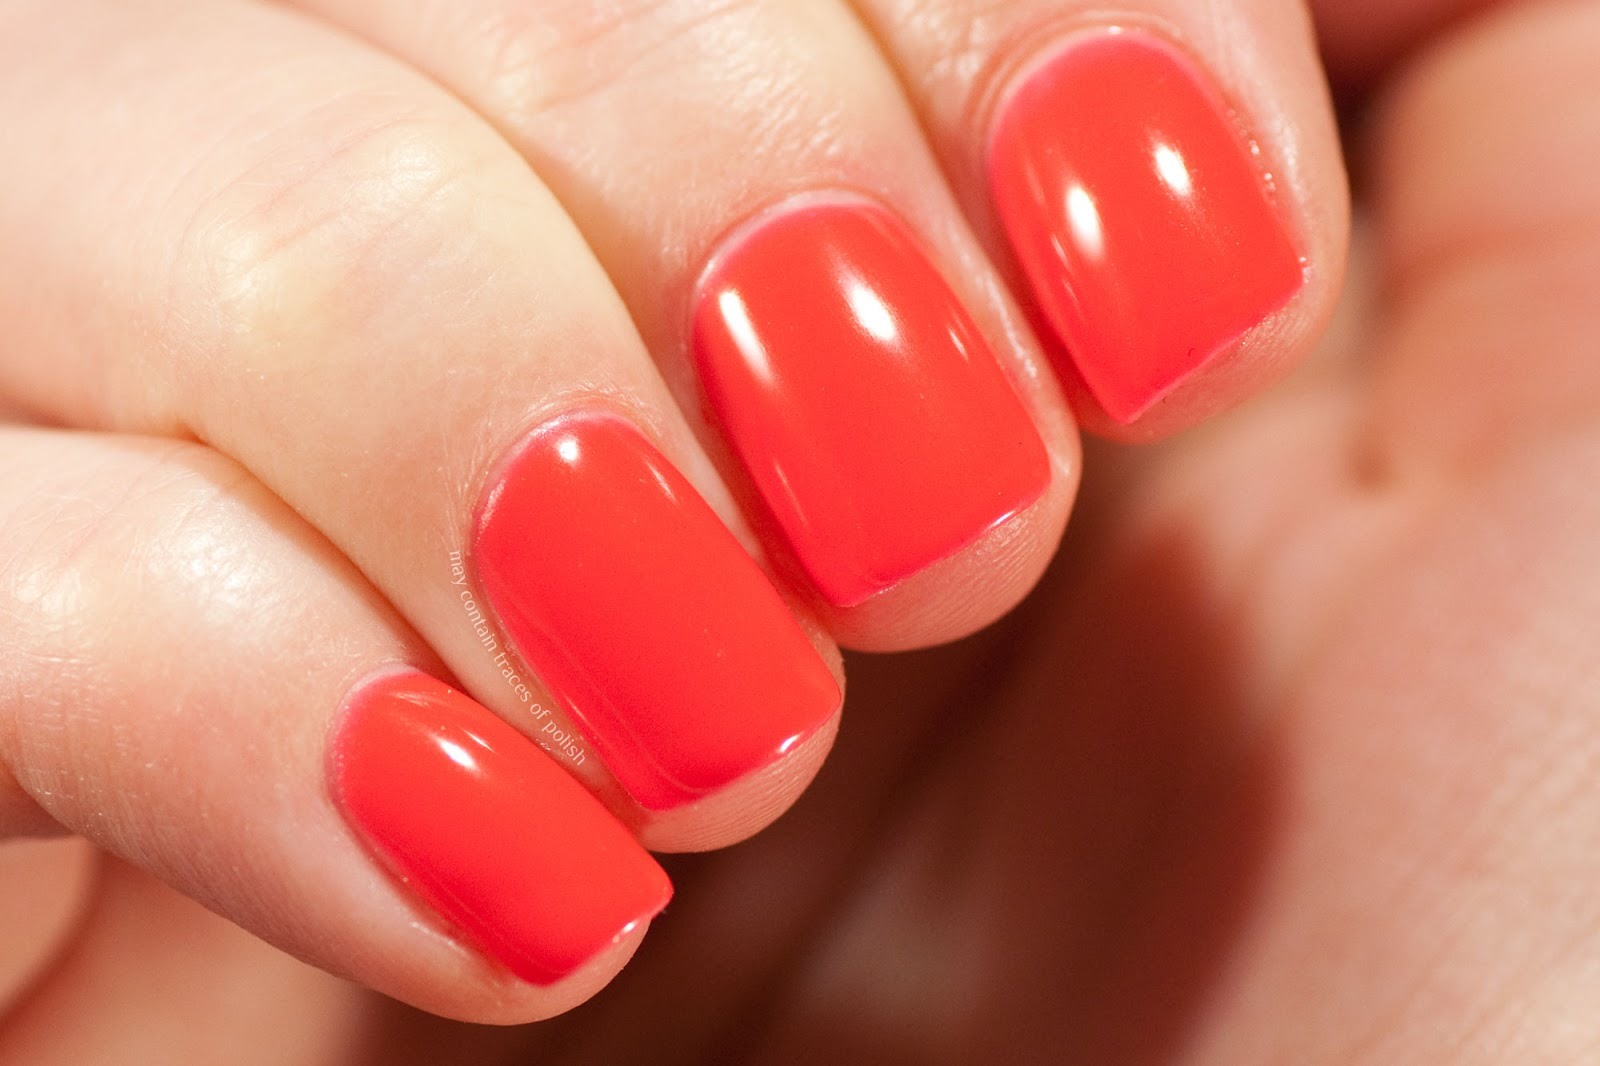 Pink Gellac Swatches - 210 Tangerine Red